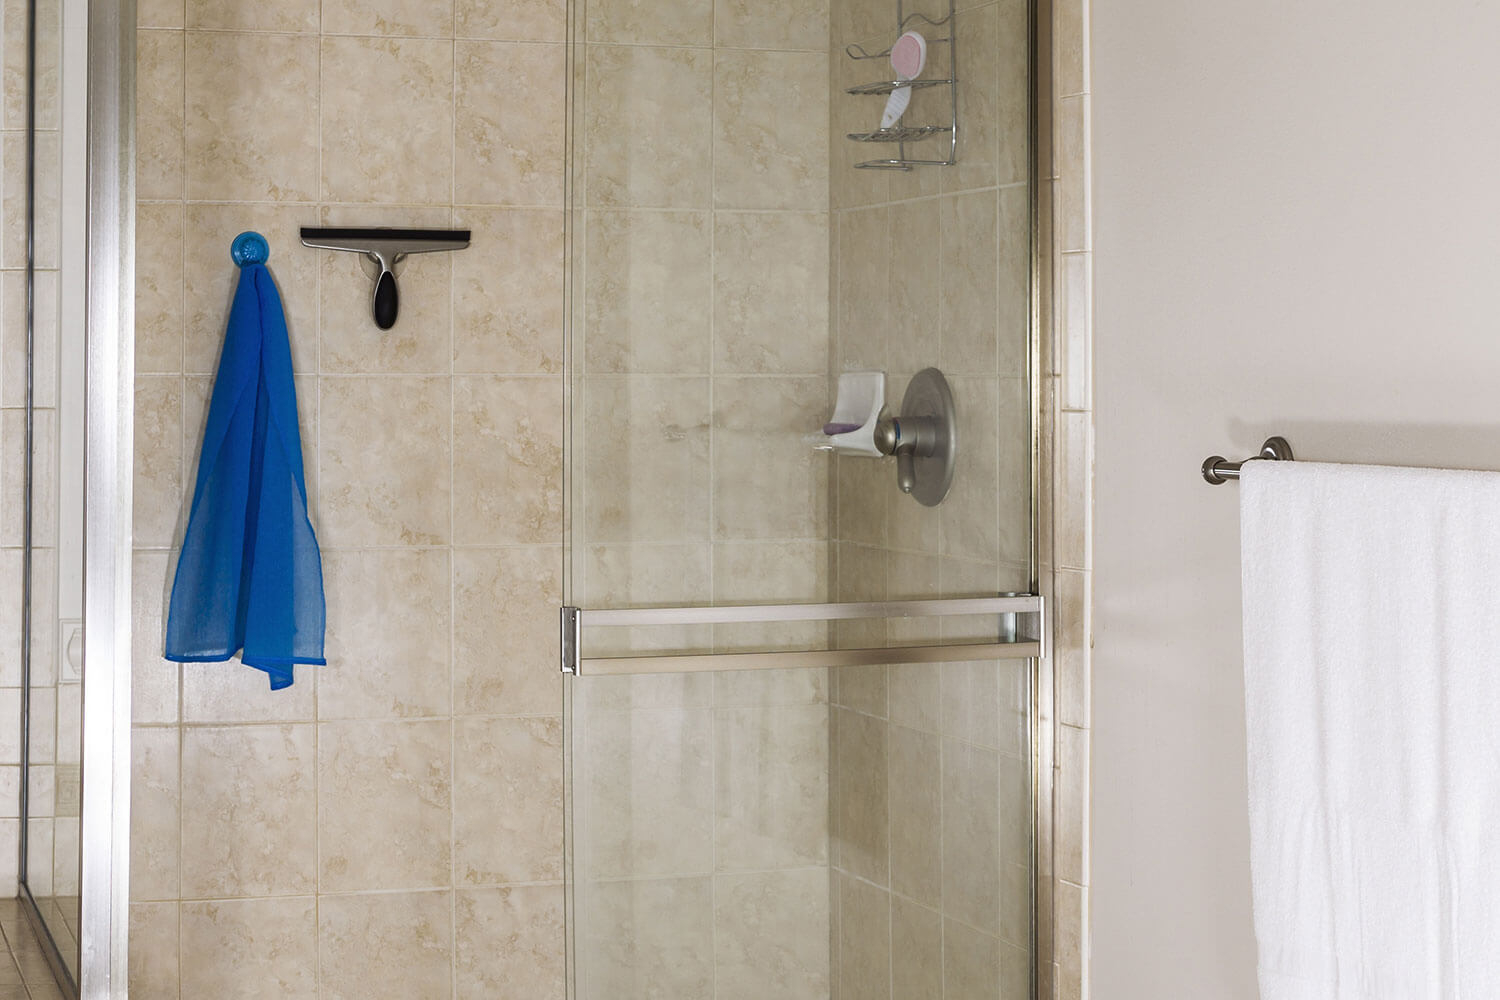 10 Best Shower Squeegees Top Brands Reviewed Mar 2019 intended for sizing 1500 X 1000